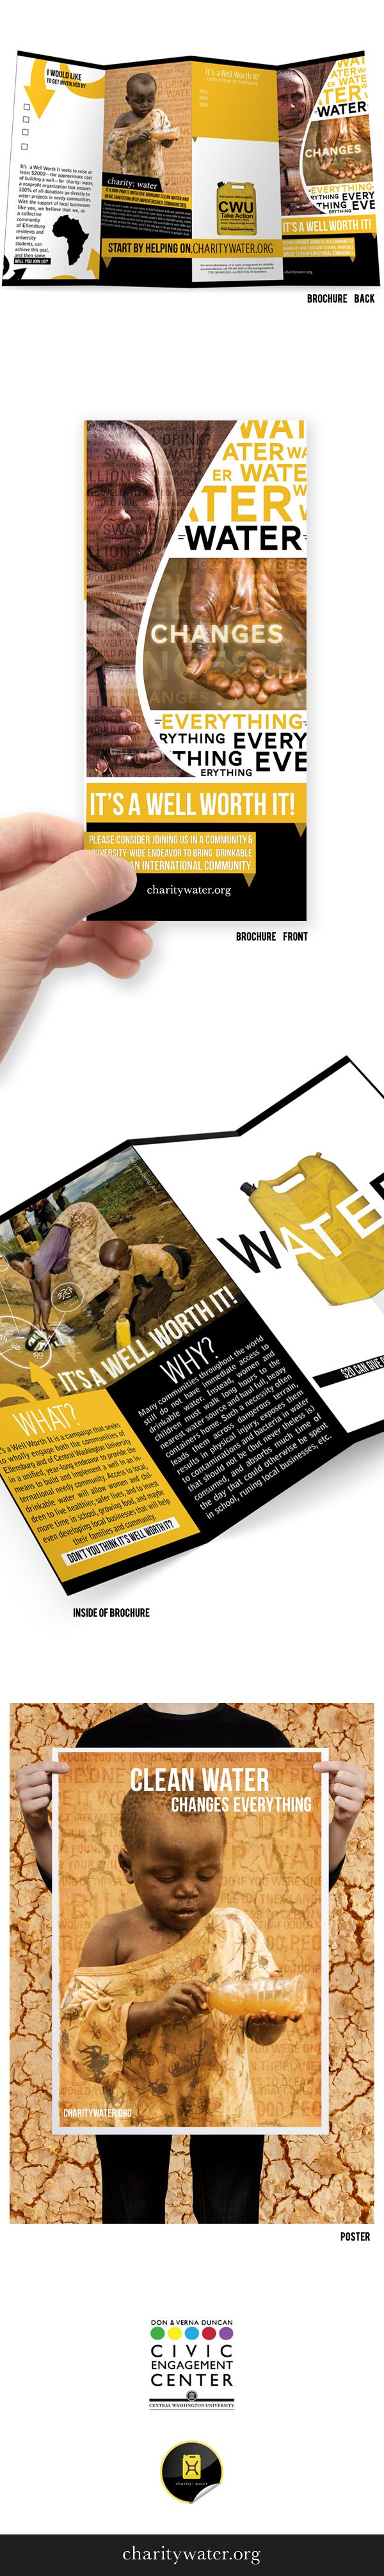 Charity Water : Fundraising Brochure & Poster on Behance